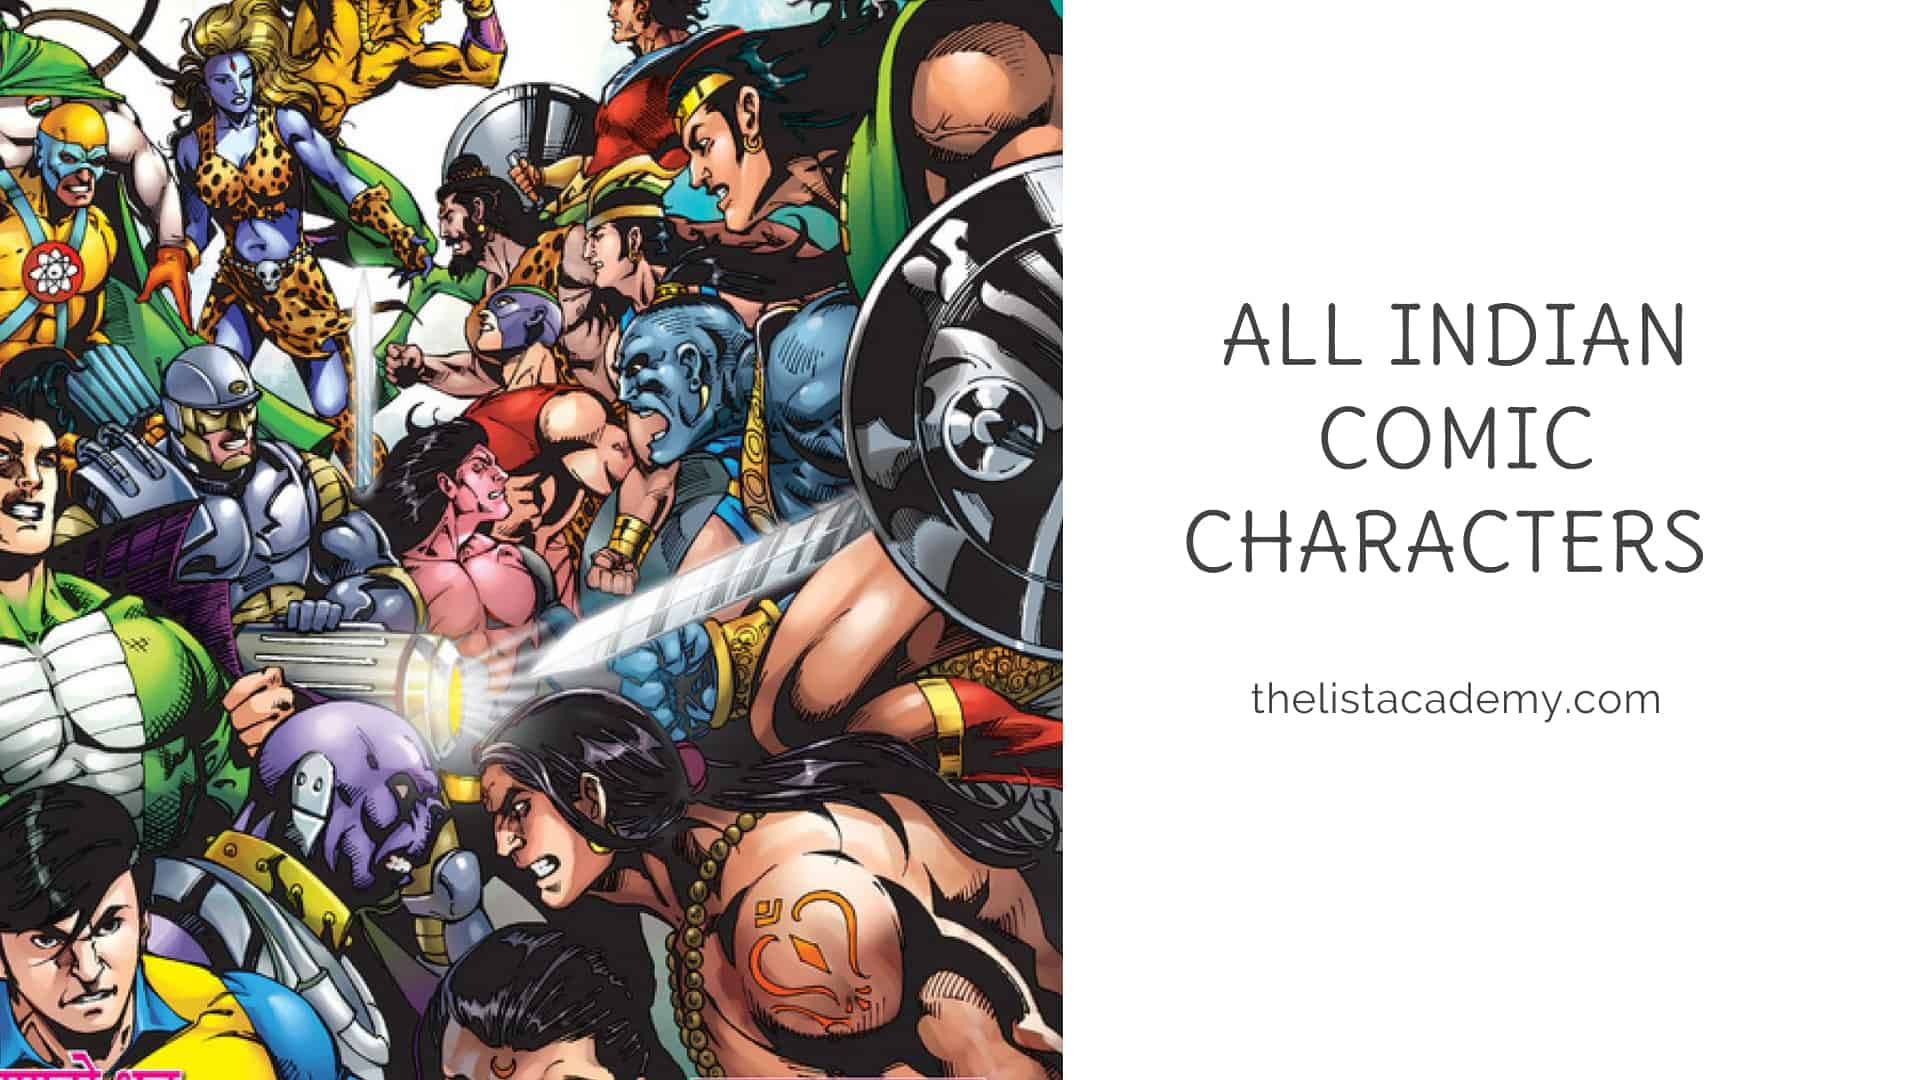 Cover Image For List : All Indian Comic Characters - 300+ Indian Comic Characters